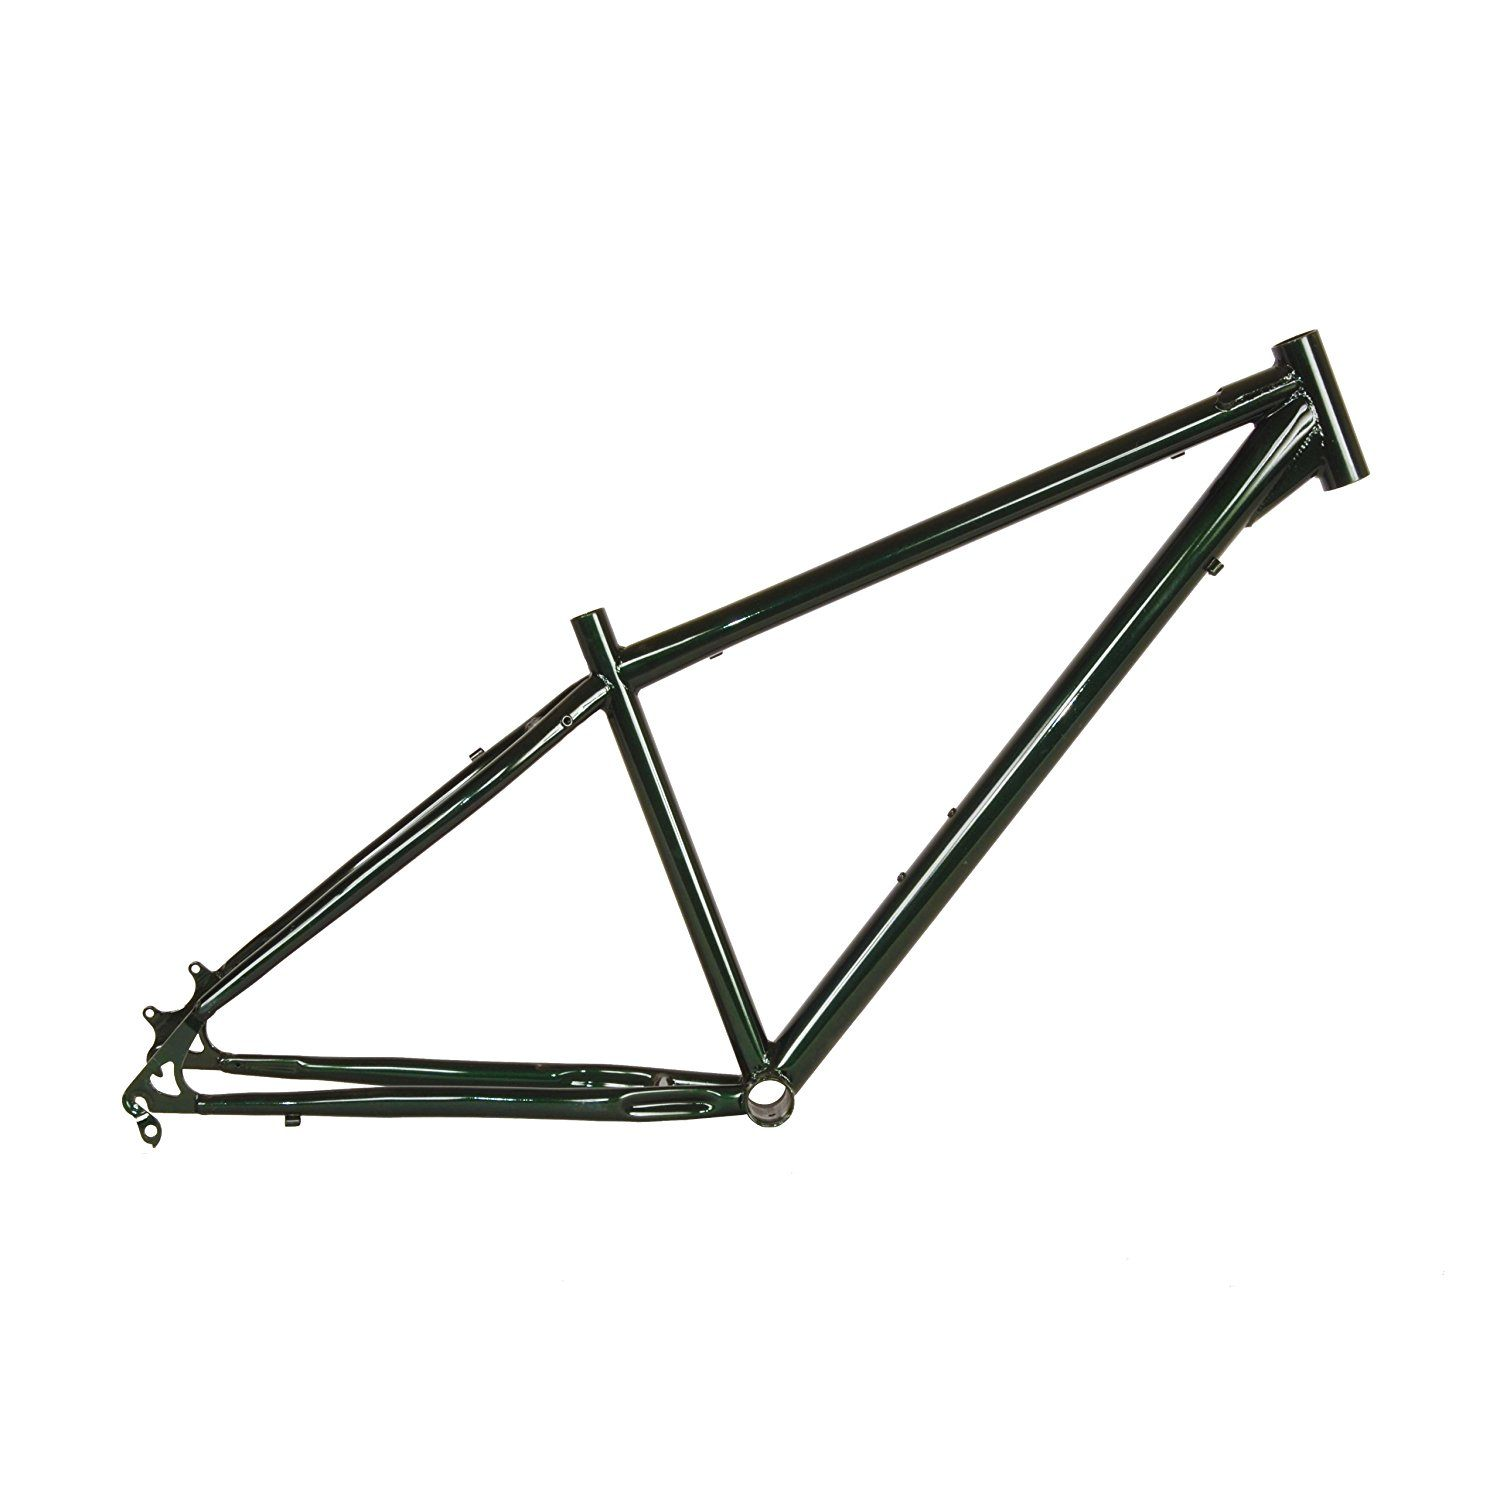 Mountain bike - steel frame